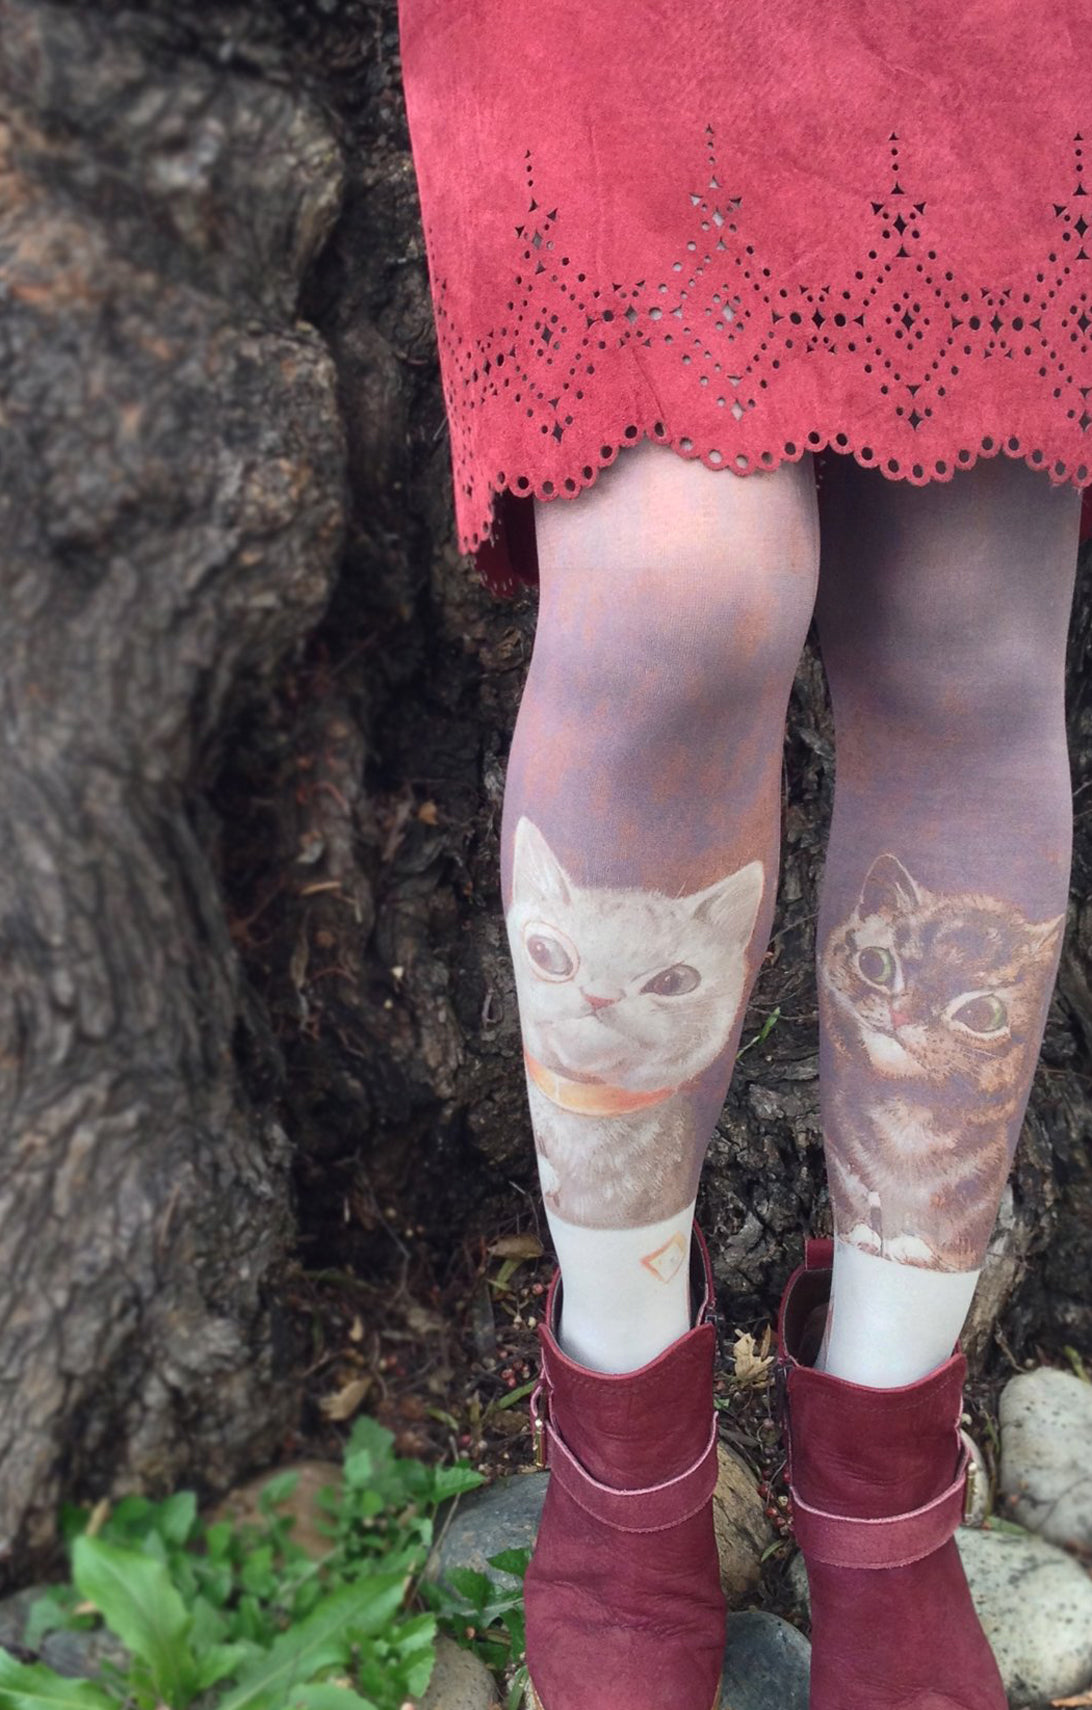 LOUIS WAIN l BACHELOR PARTY PRINTED TIGHTS